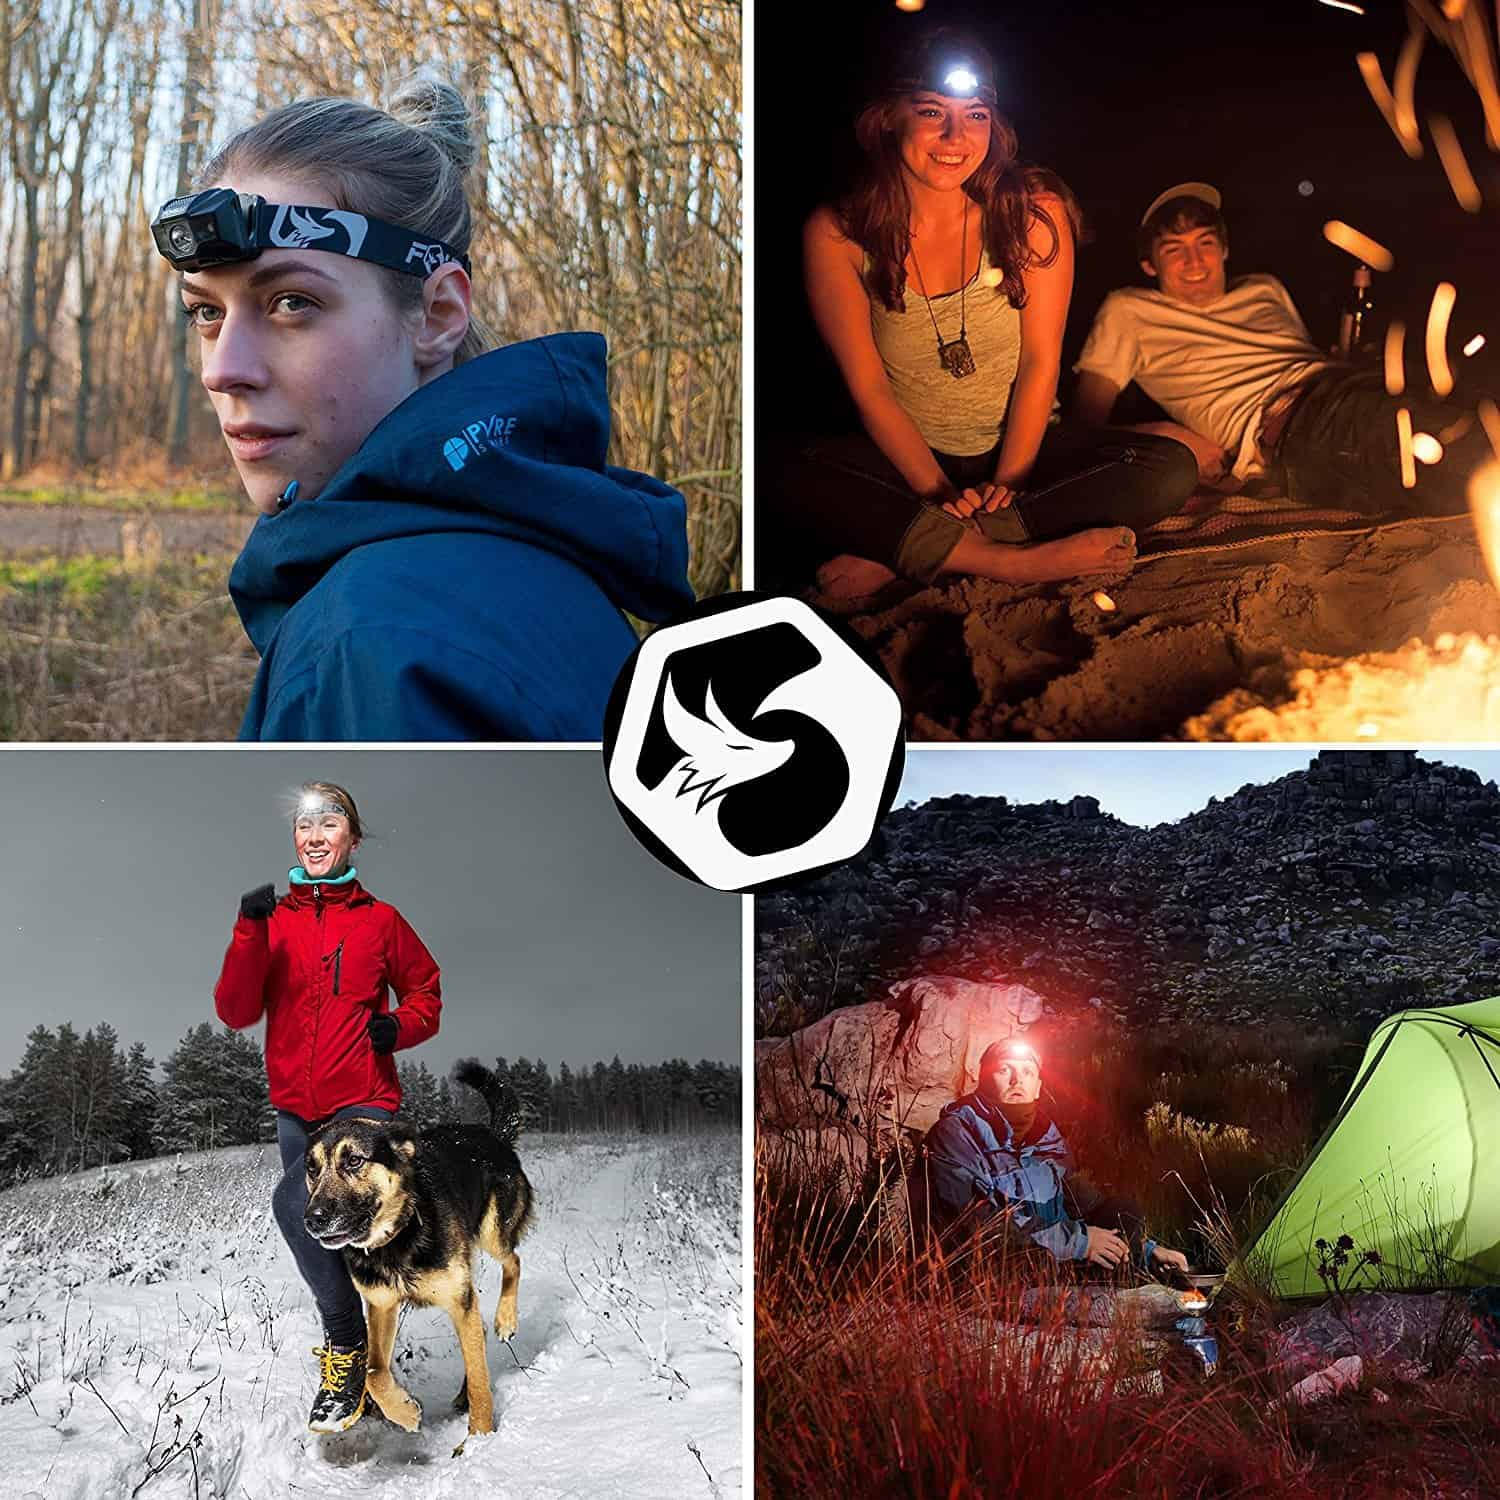 Hiking Gear rechargeable headlamp